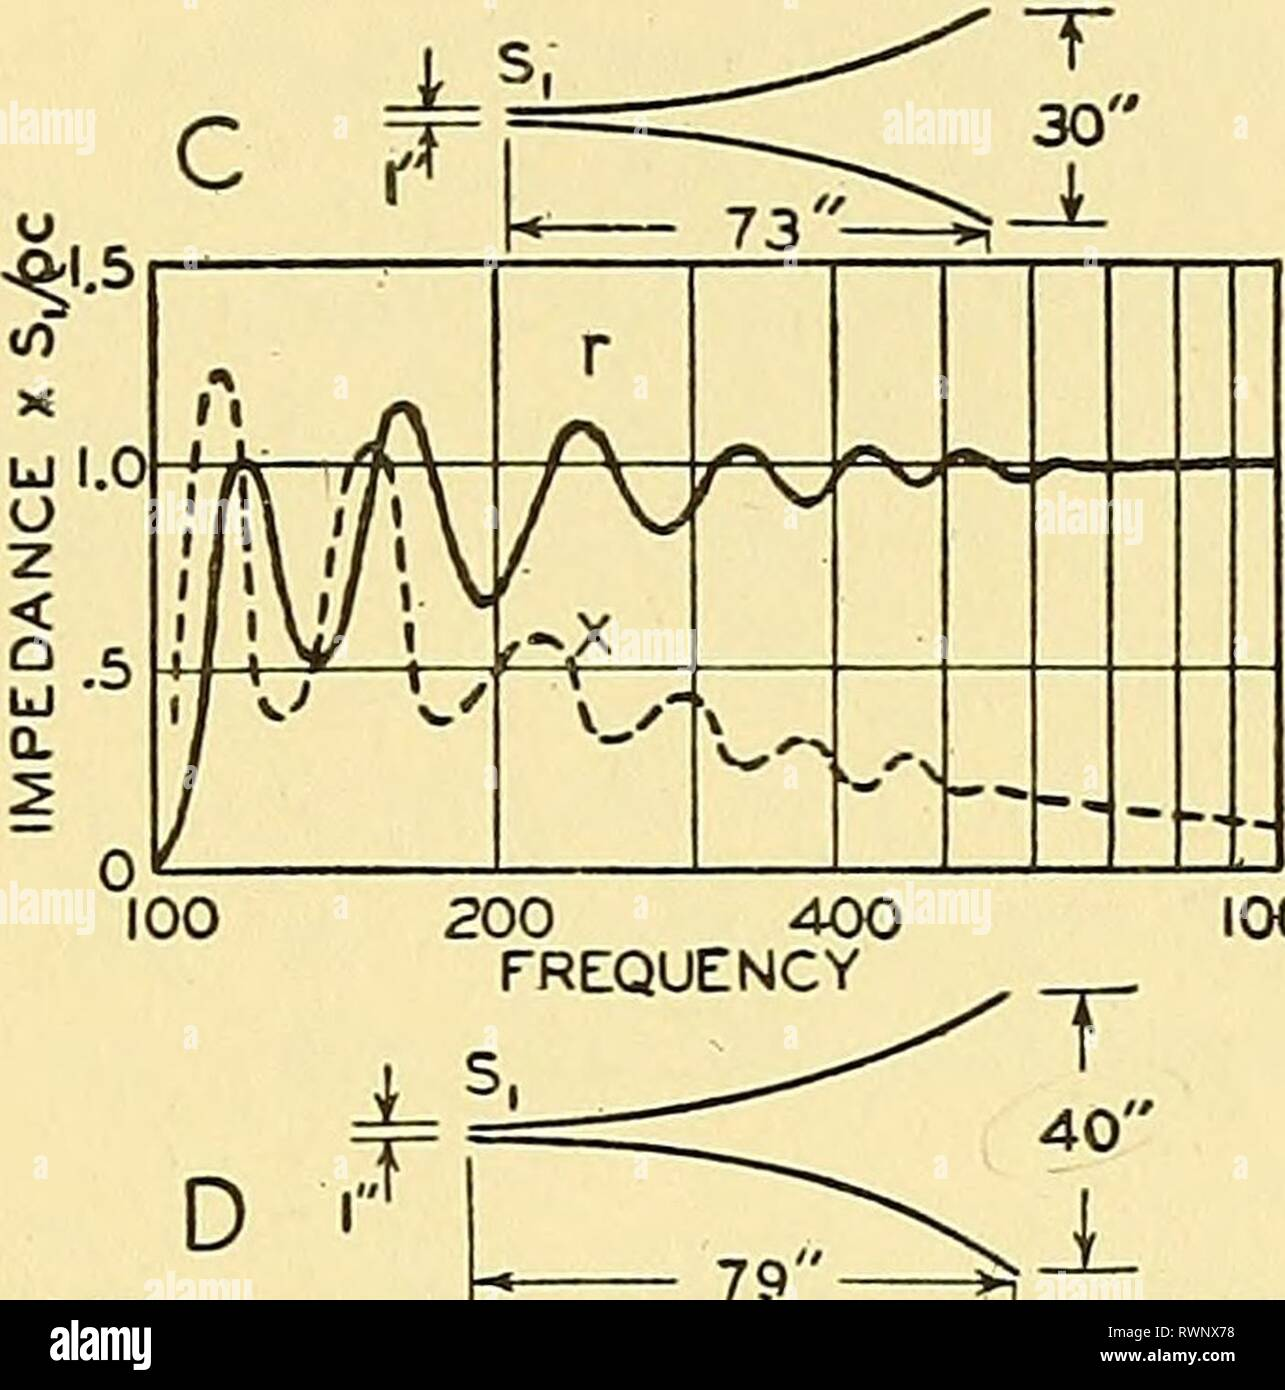 elements of acoustical engineering (1940) elements of acoustical  engineering elementsofacoust00olso year: 1940 throat